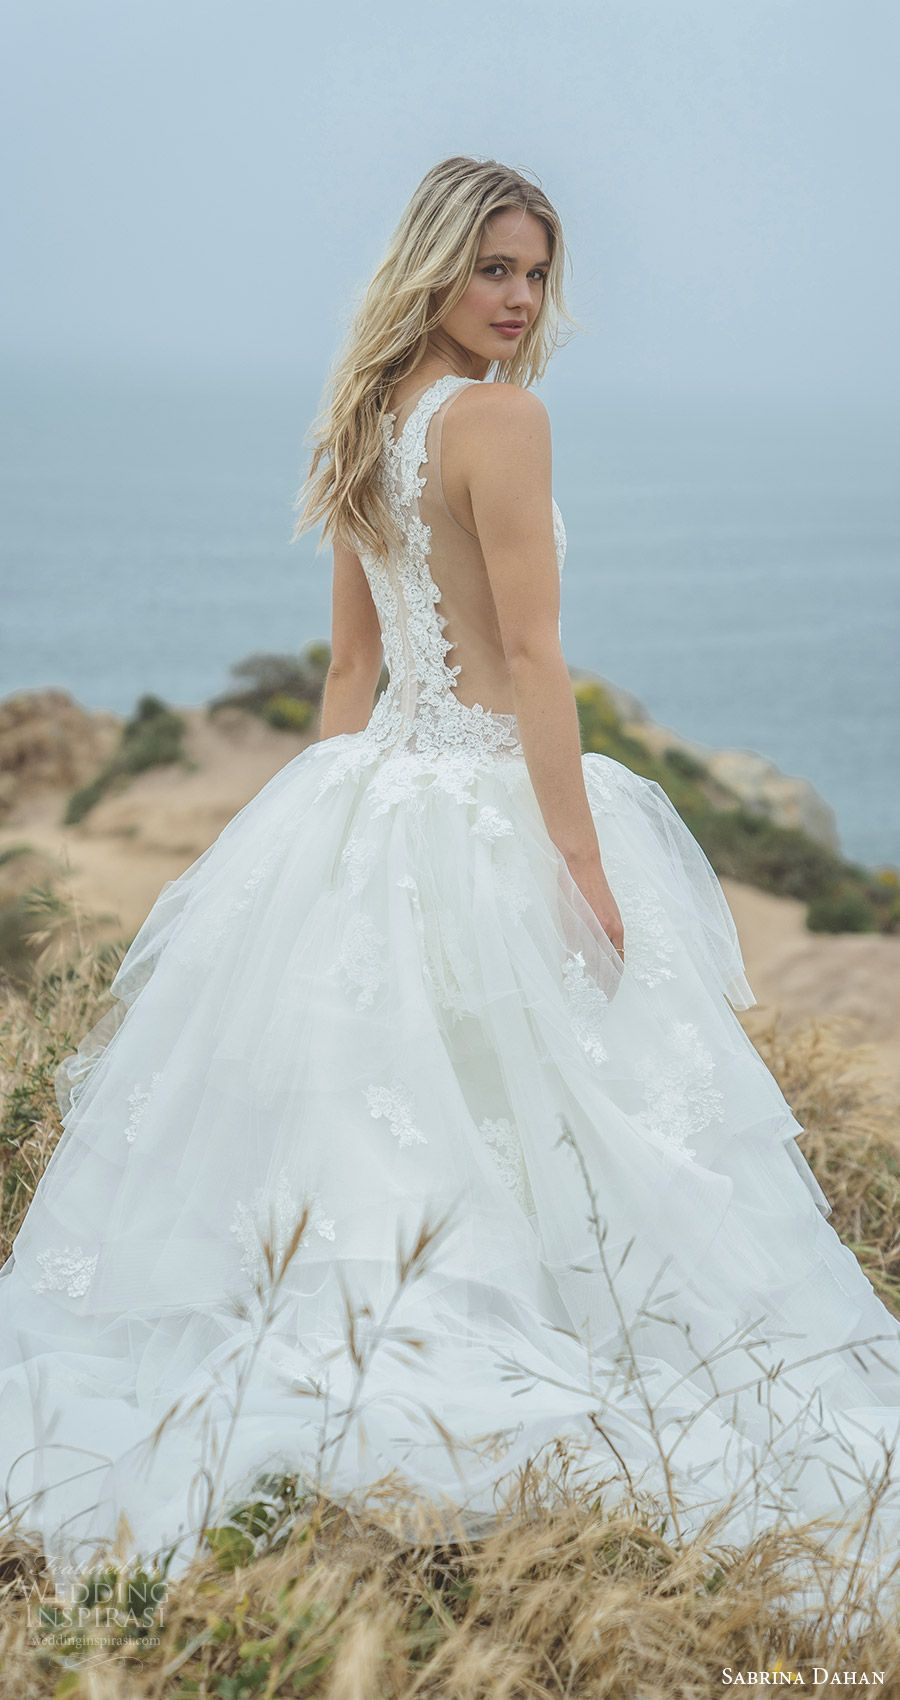 Amazing Vestidos Novia Hippie Chic Images - All Wedding Dresses ...